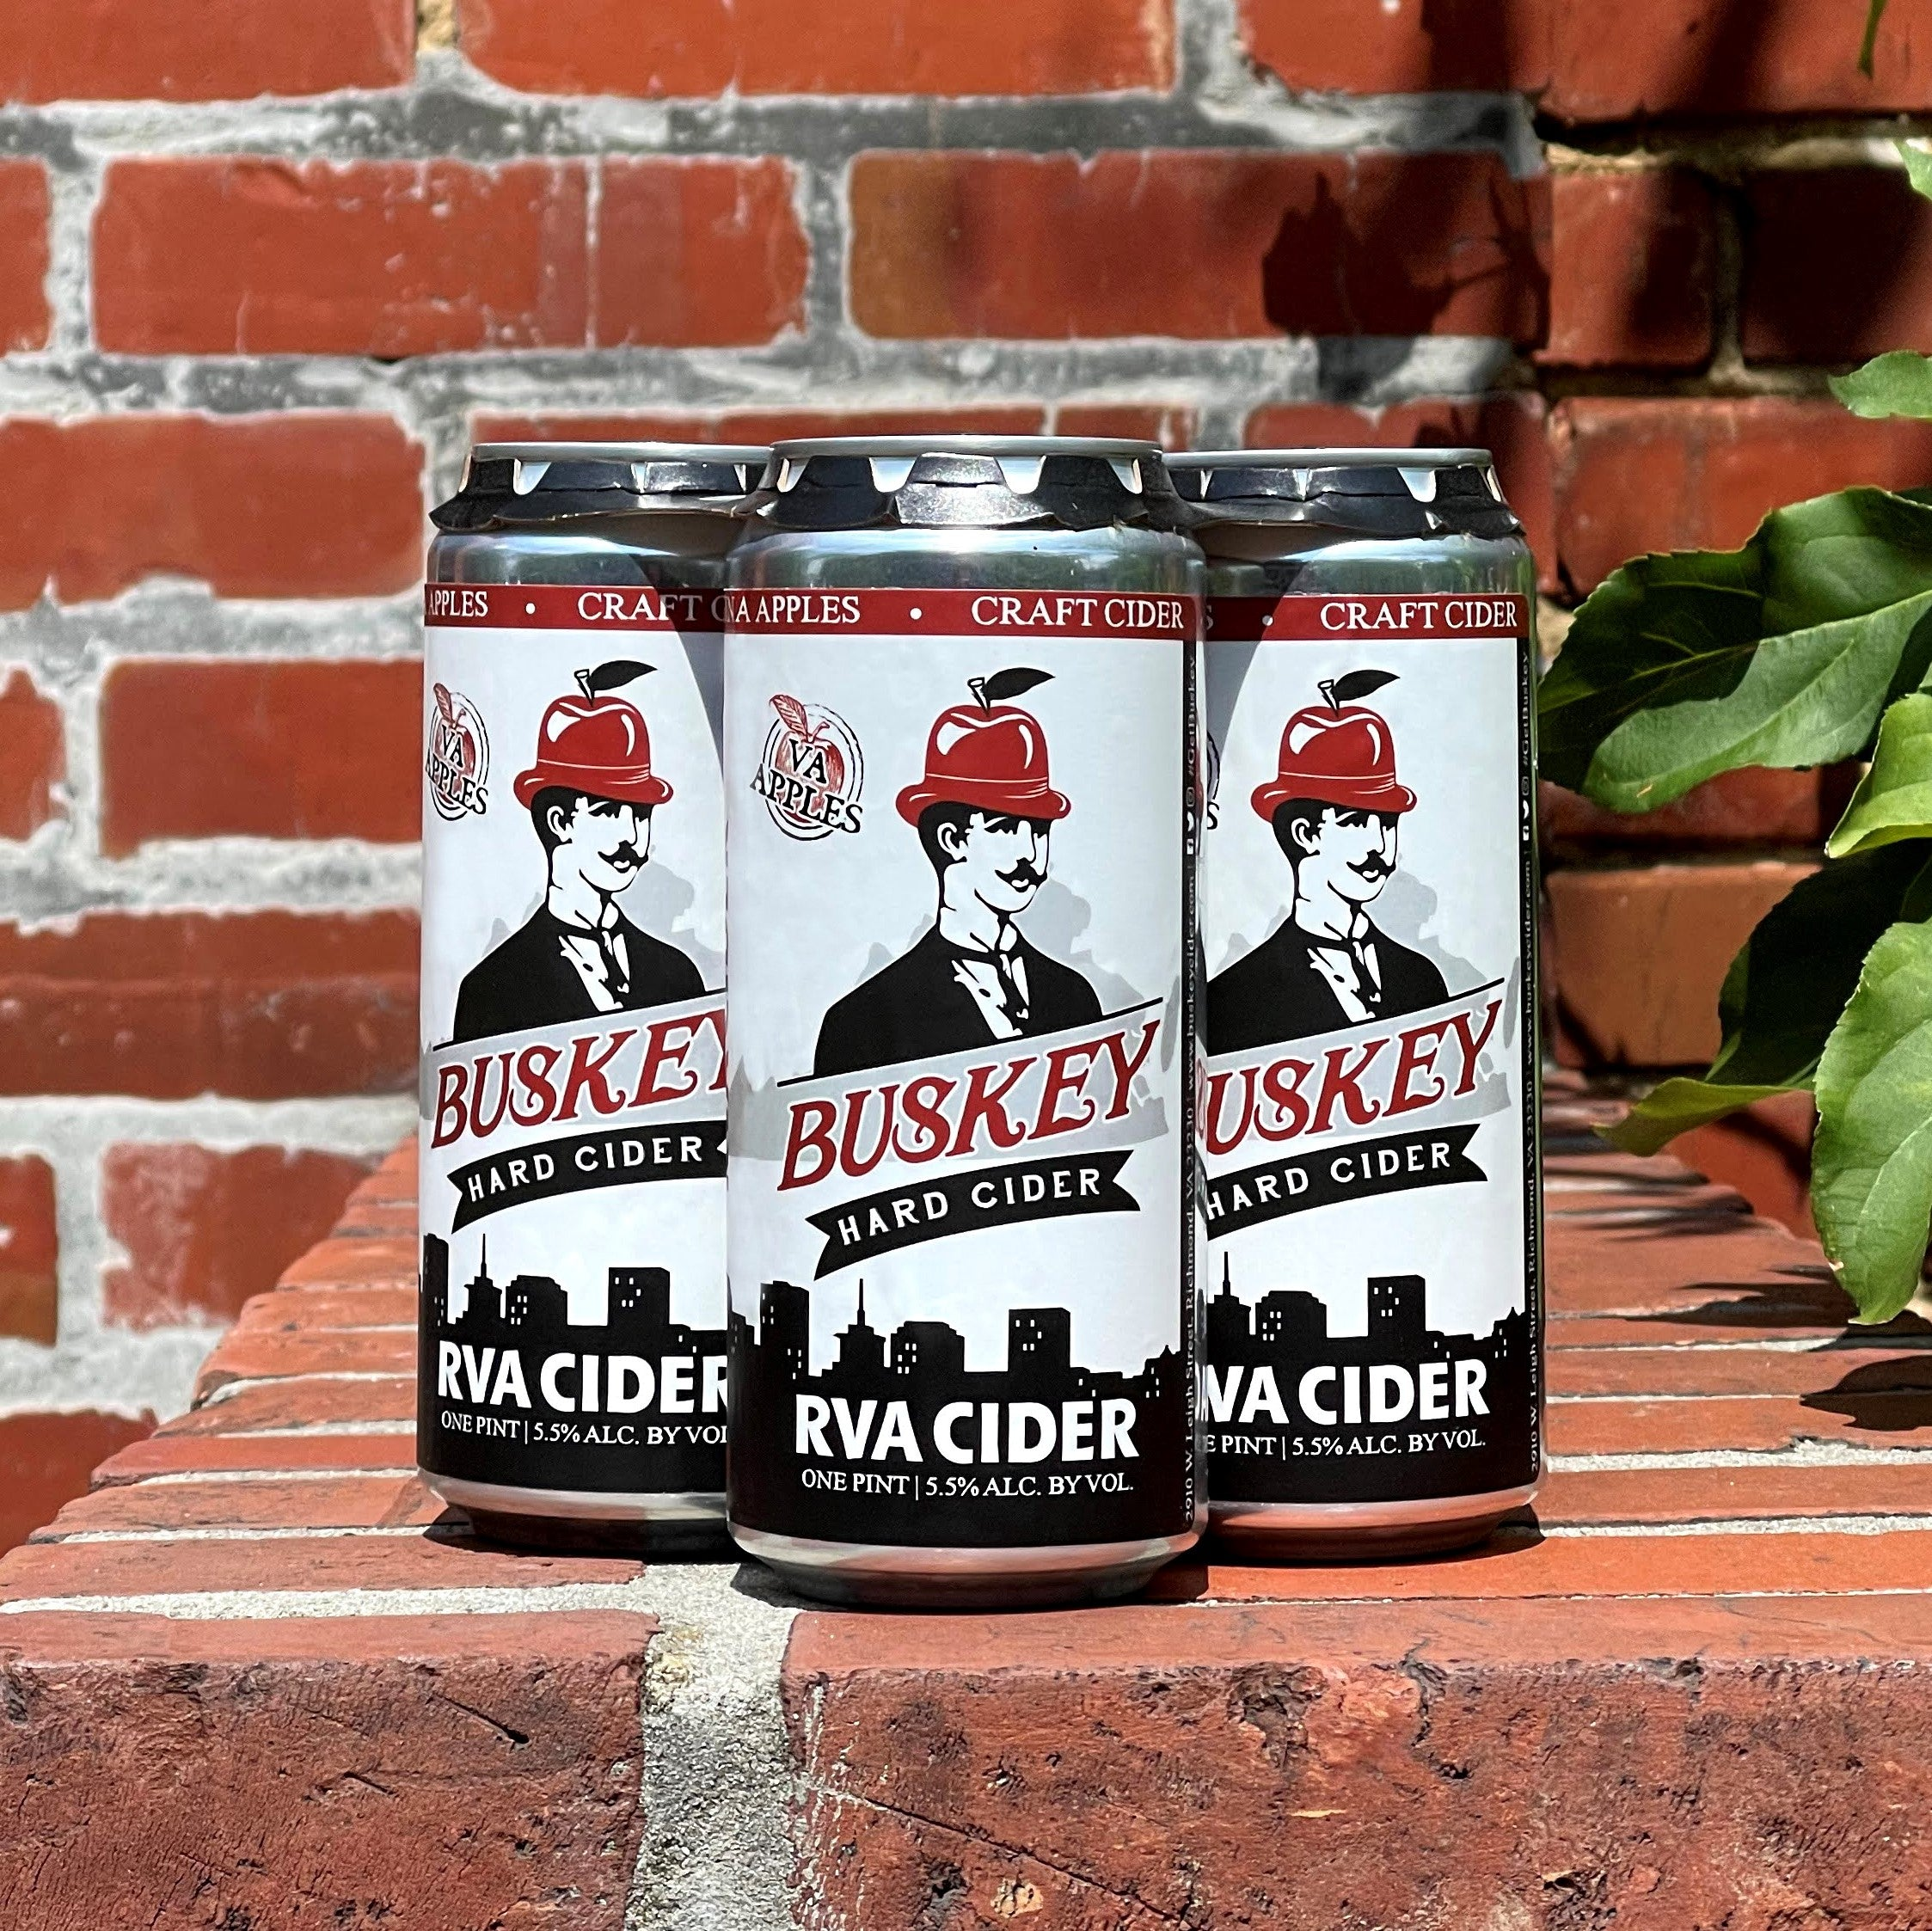 Buskey RVA Cider 6-pack cans